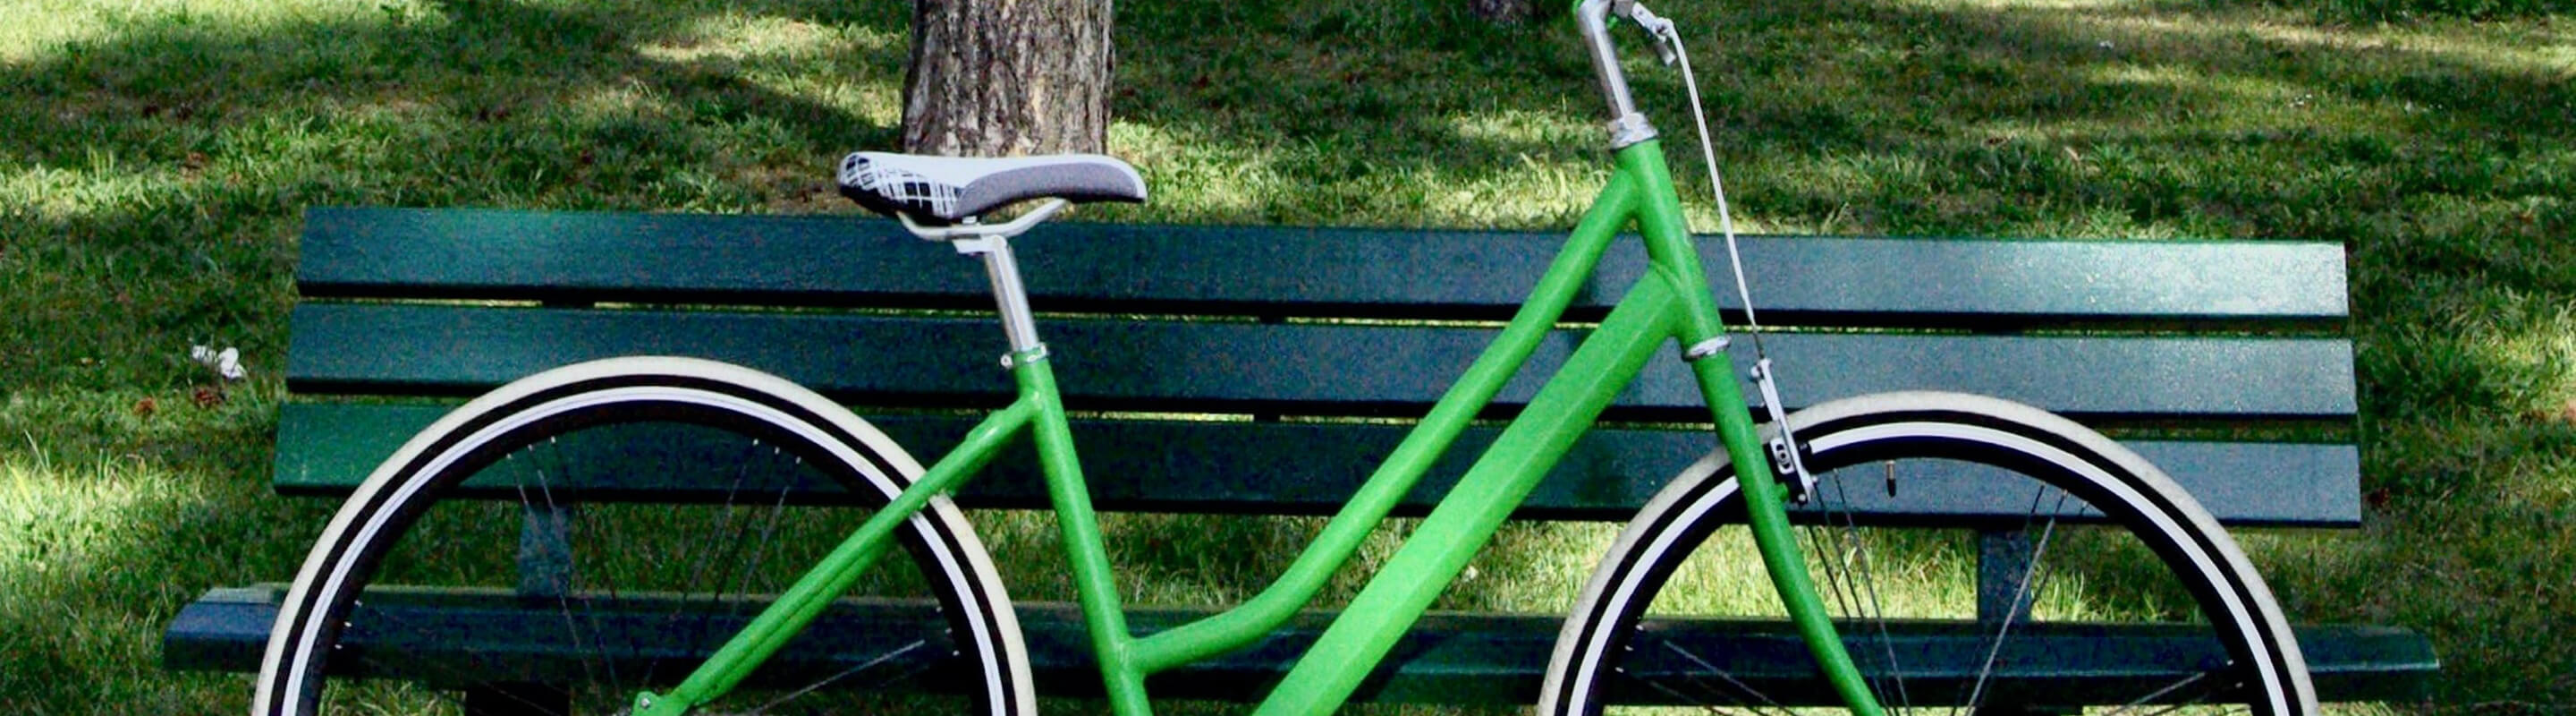 Bike leaning up against park bench